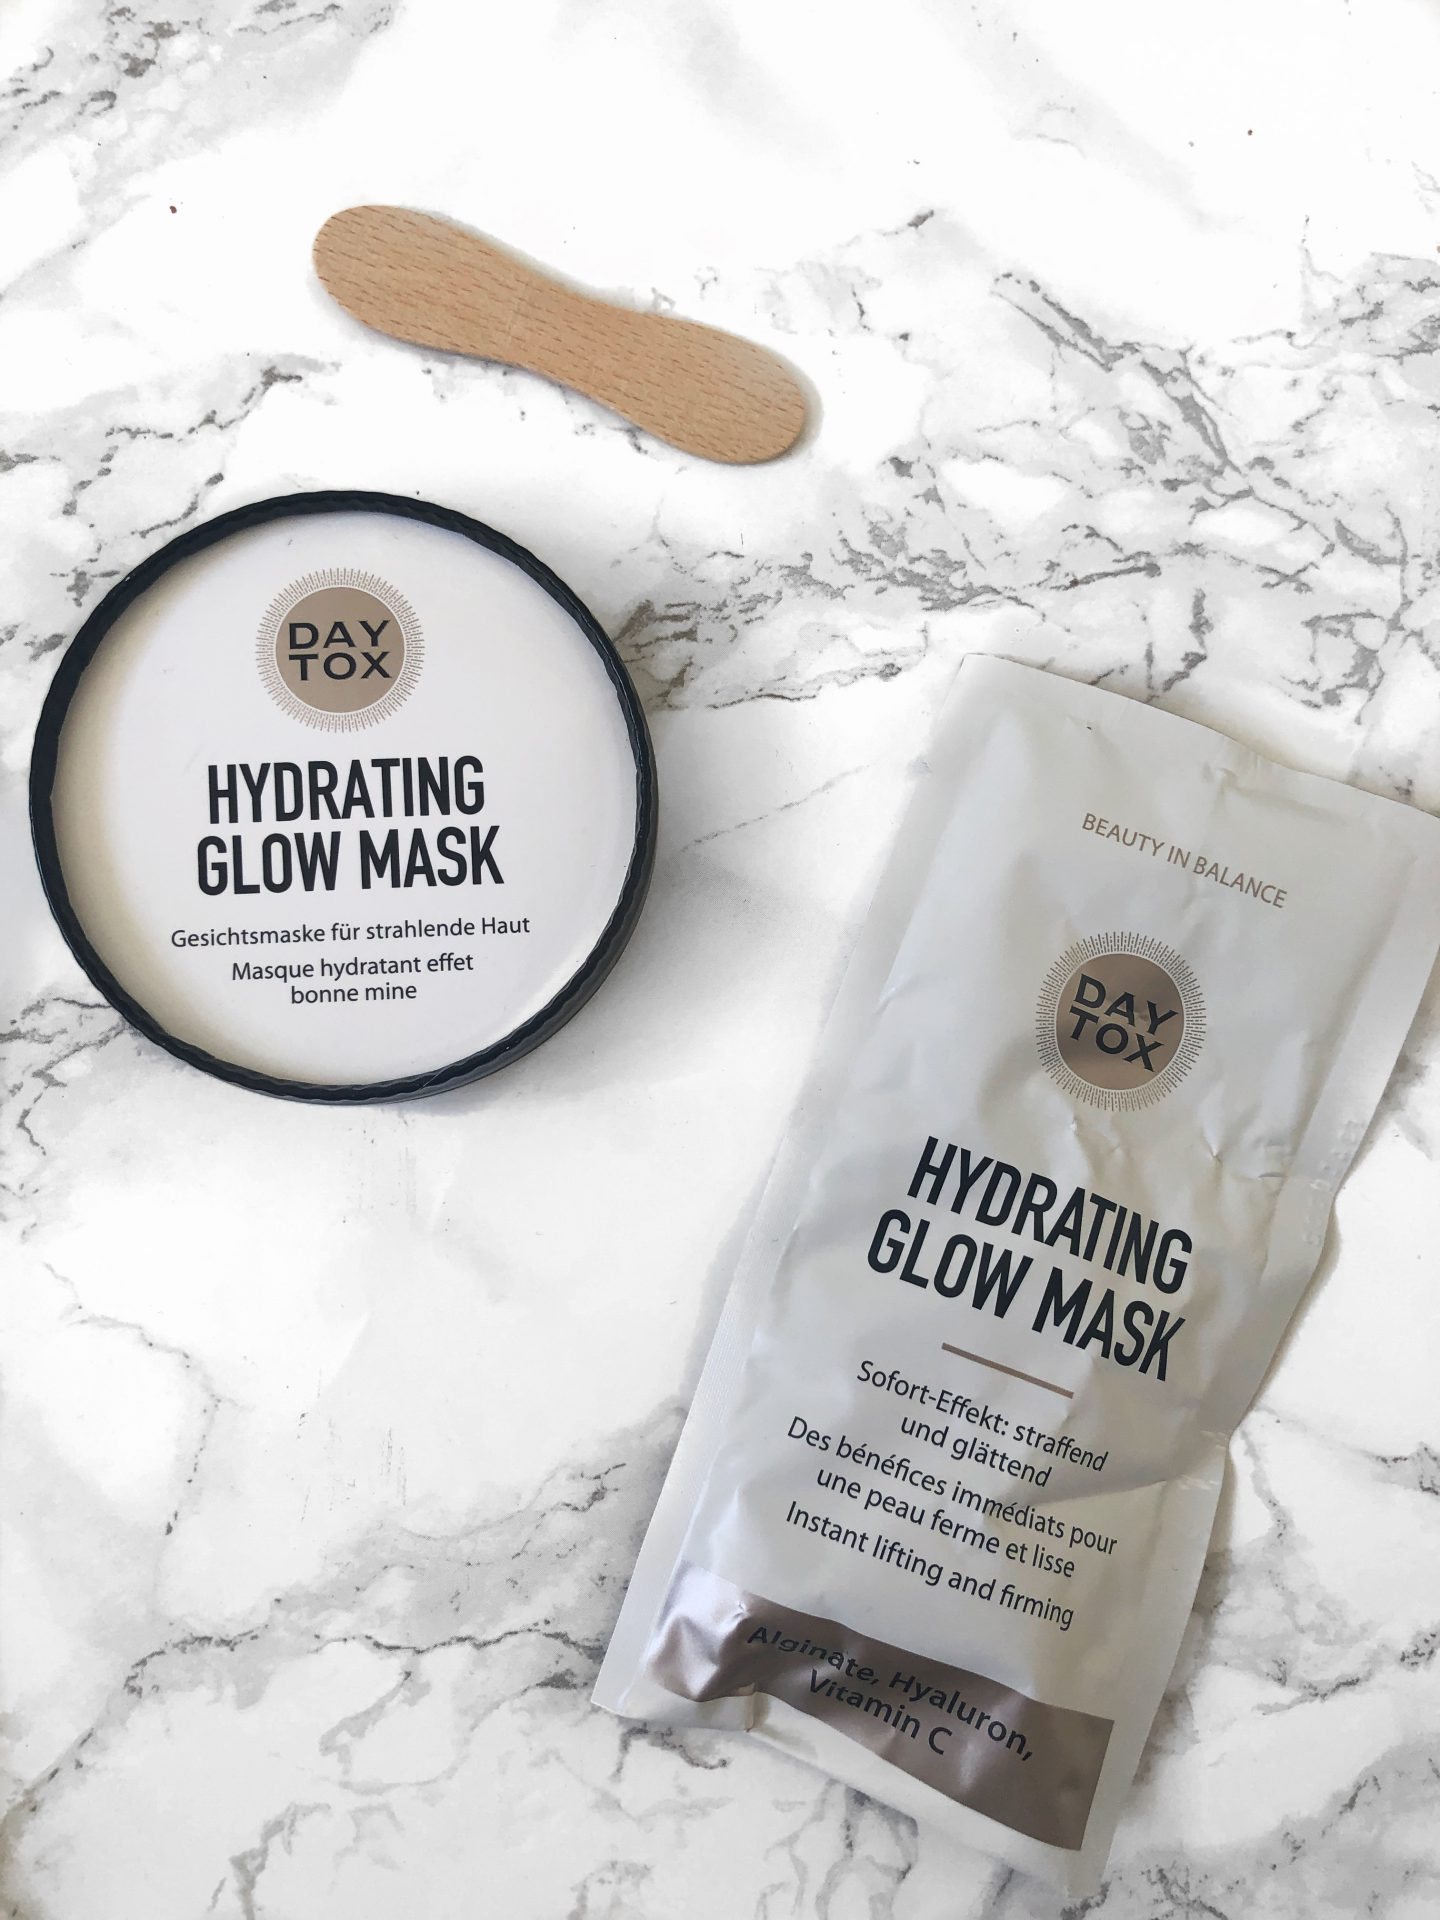 DAYTOX Face Mask